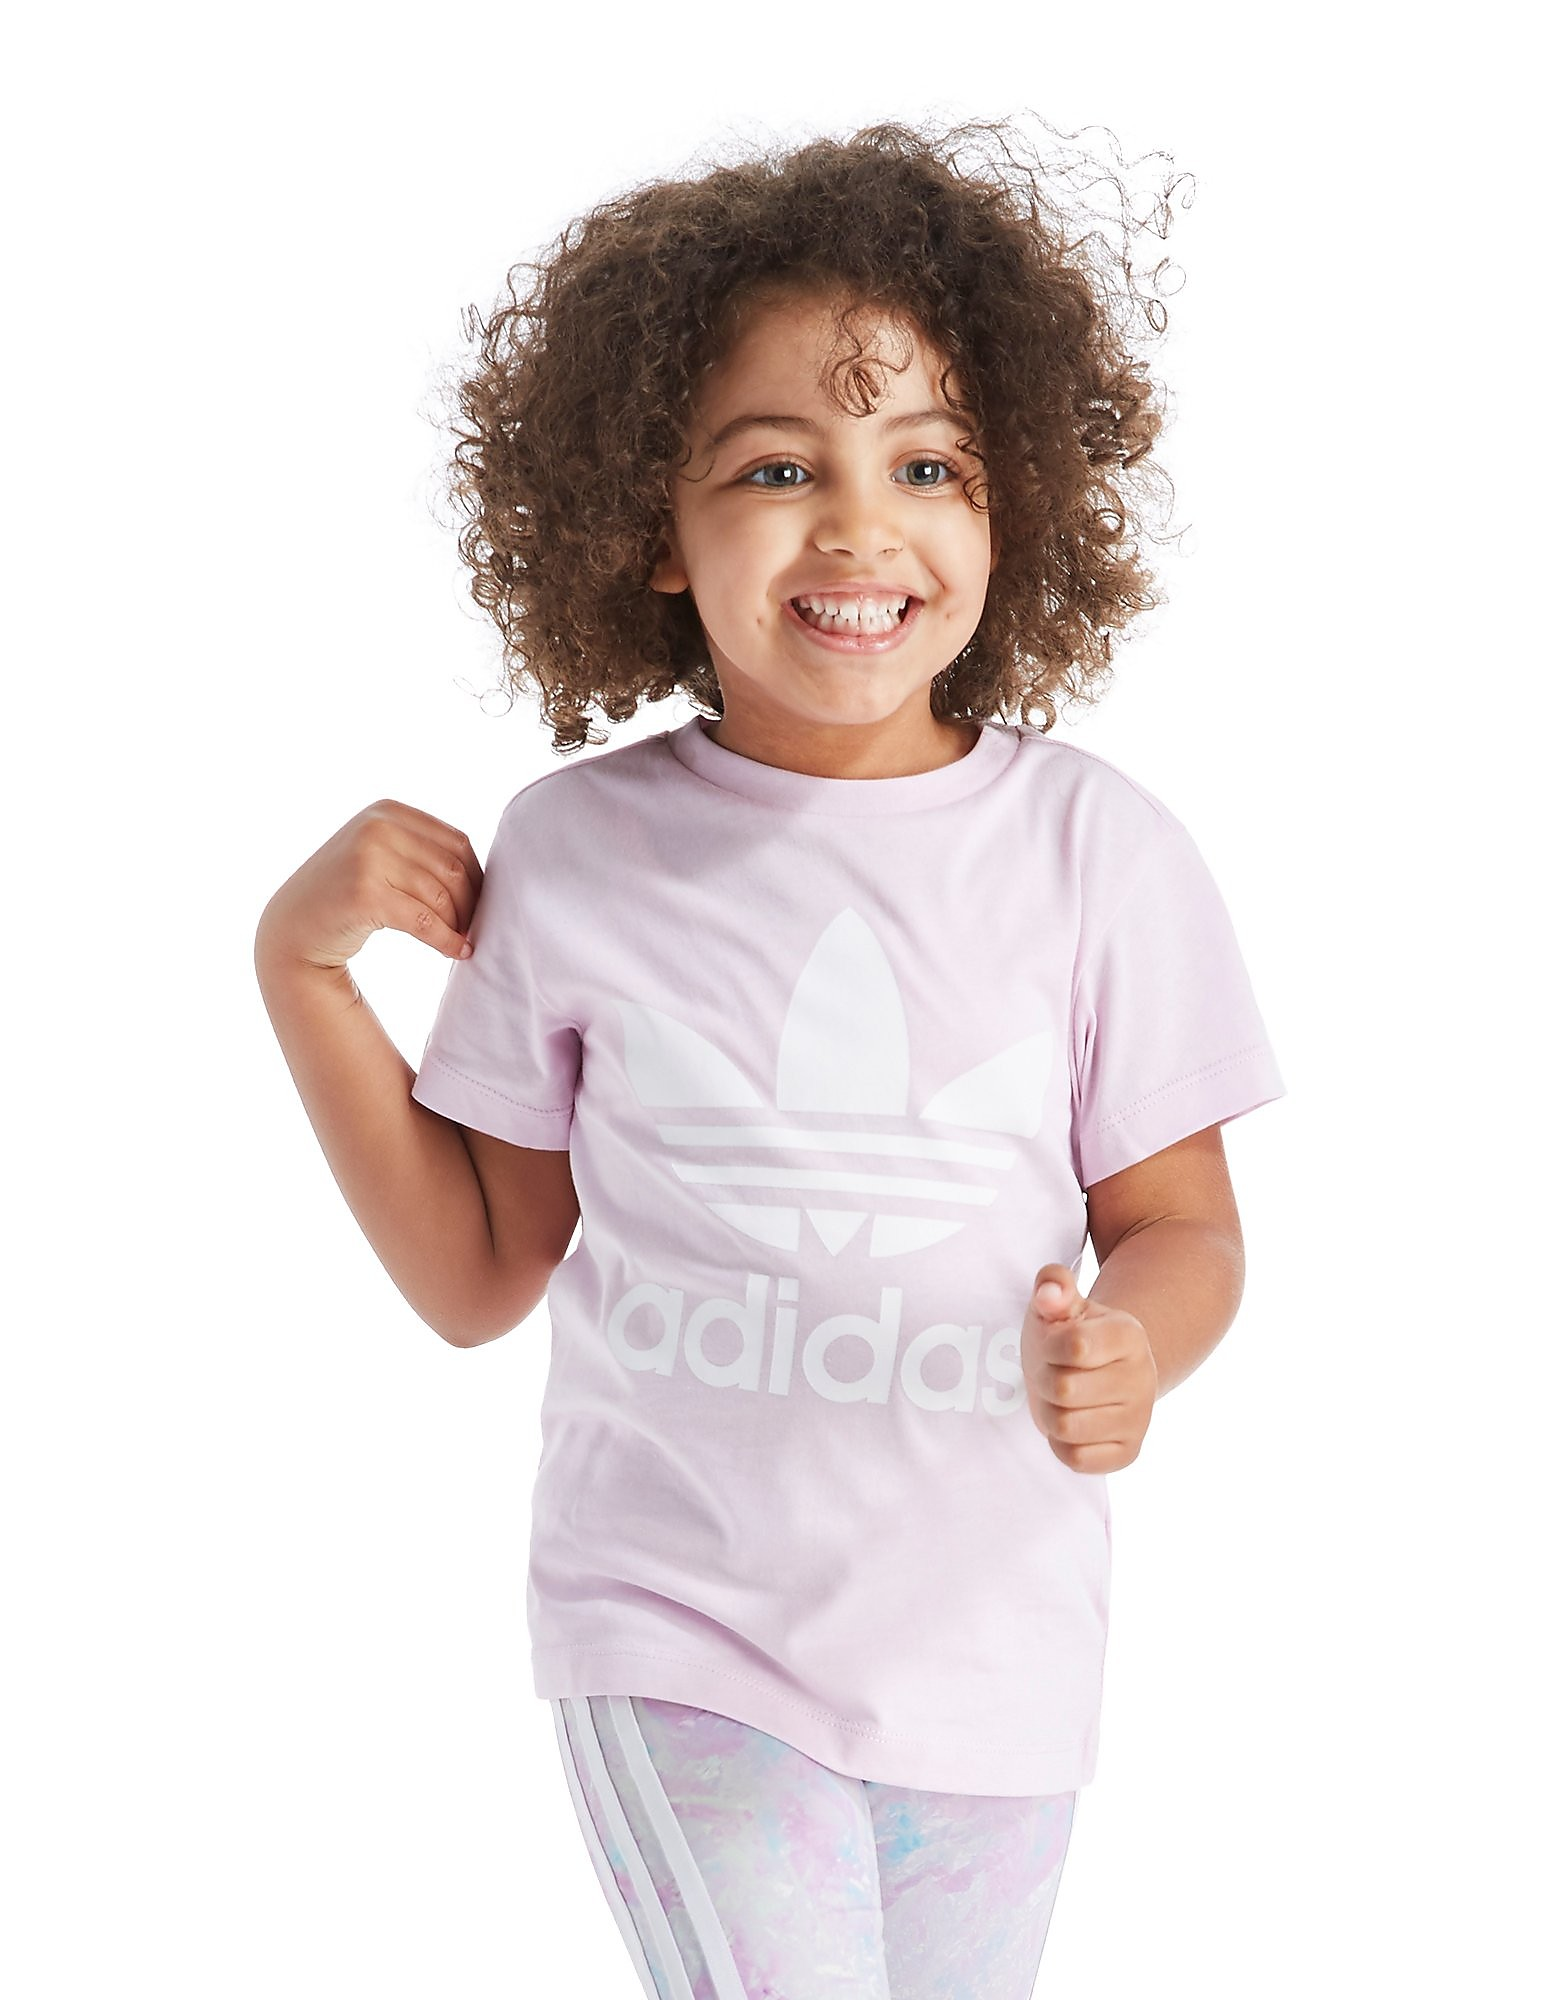 adidas Originals Girl's Trefoilc T-Shirt Children's